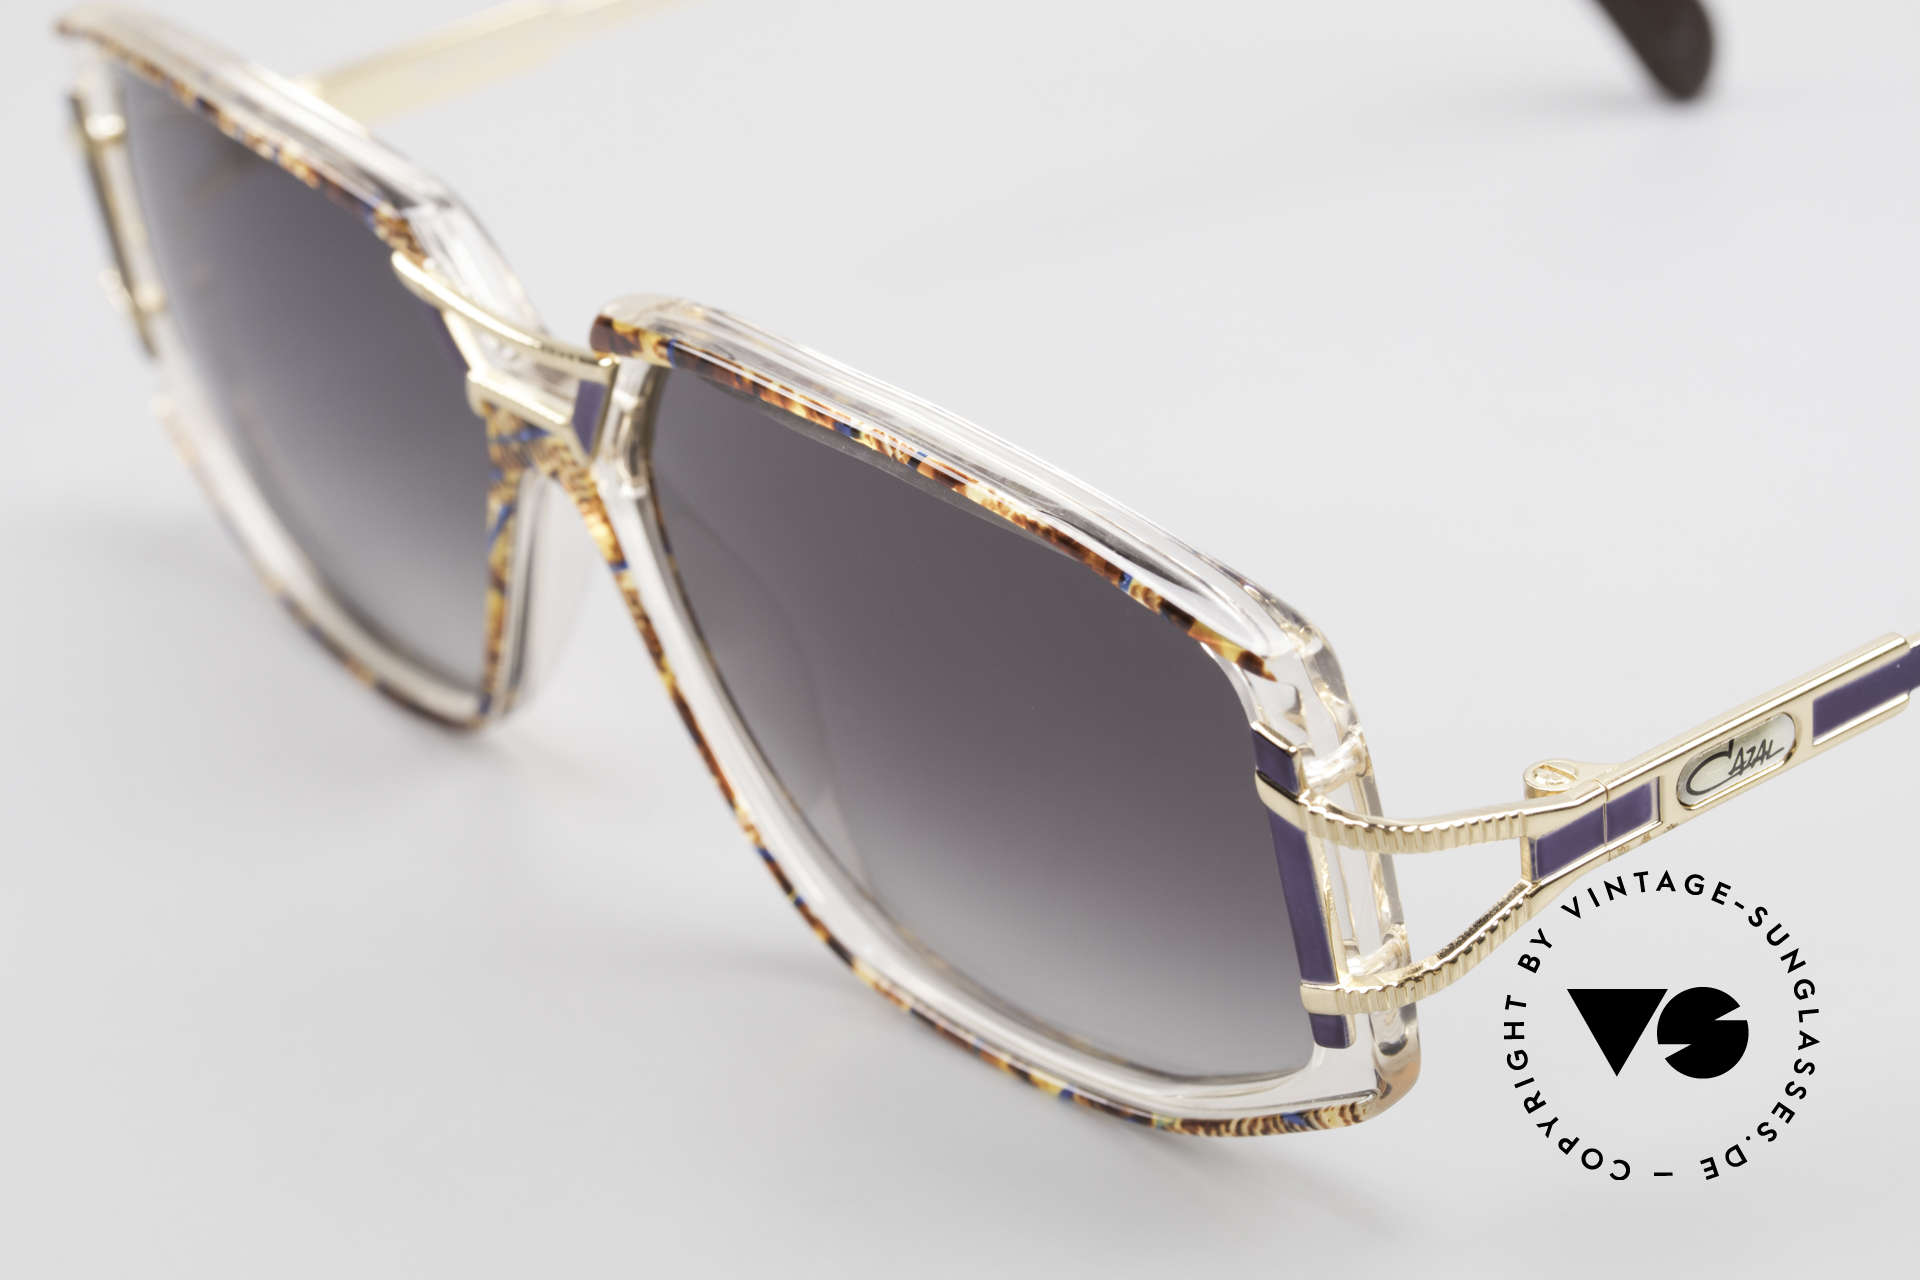 Cazal 362 Original 90's Cazal Sunglasses, CAZAL color description: amber-blue / crystal / gold, Made for Women